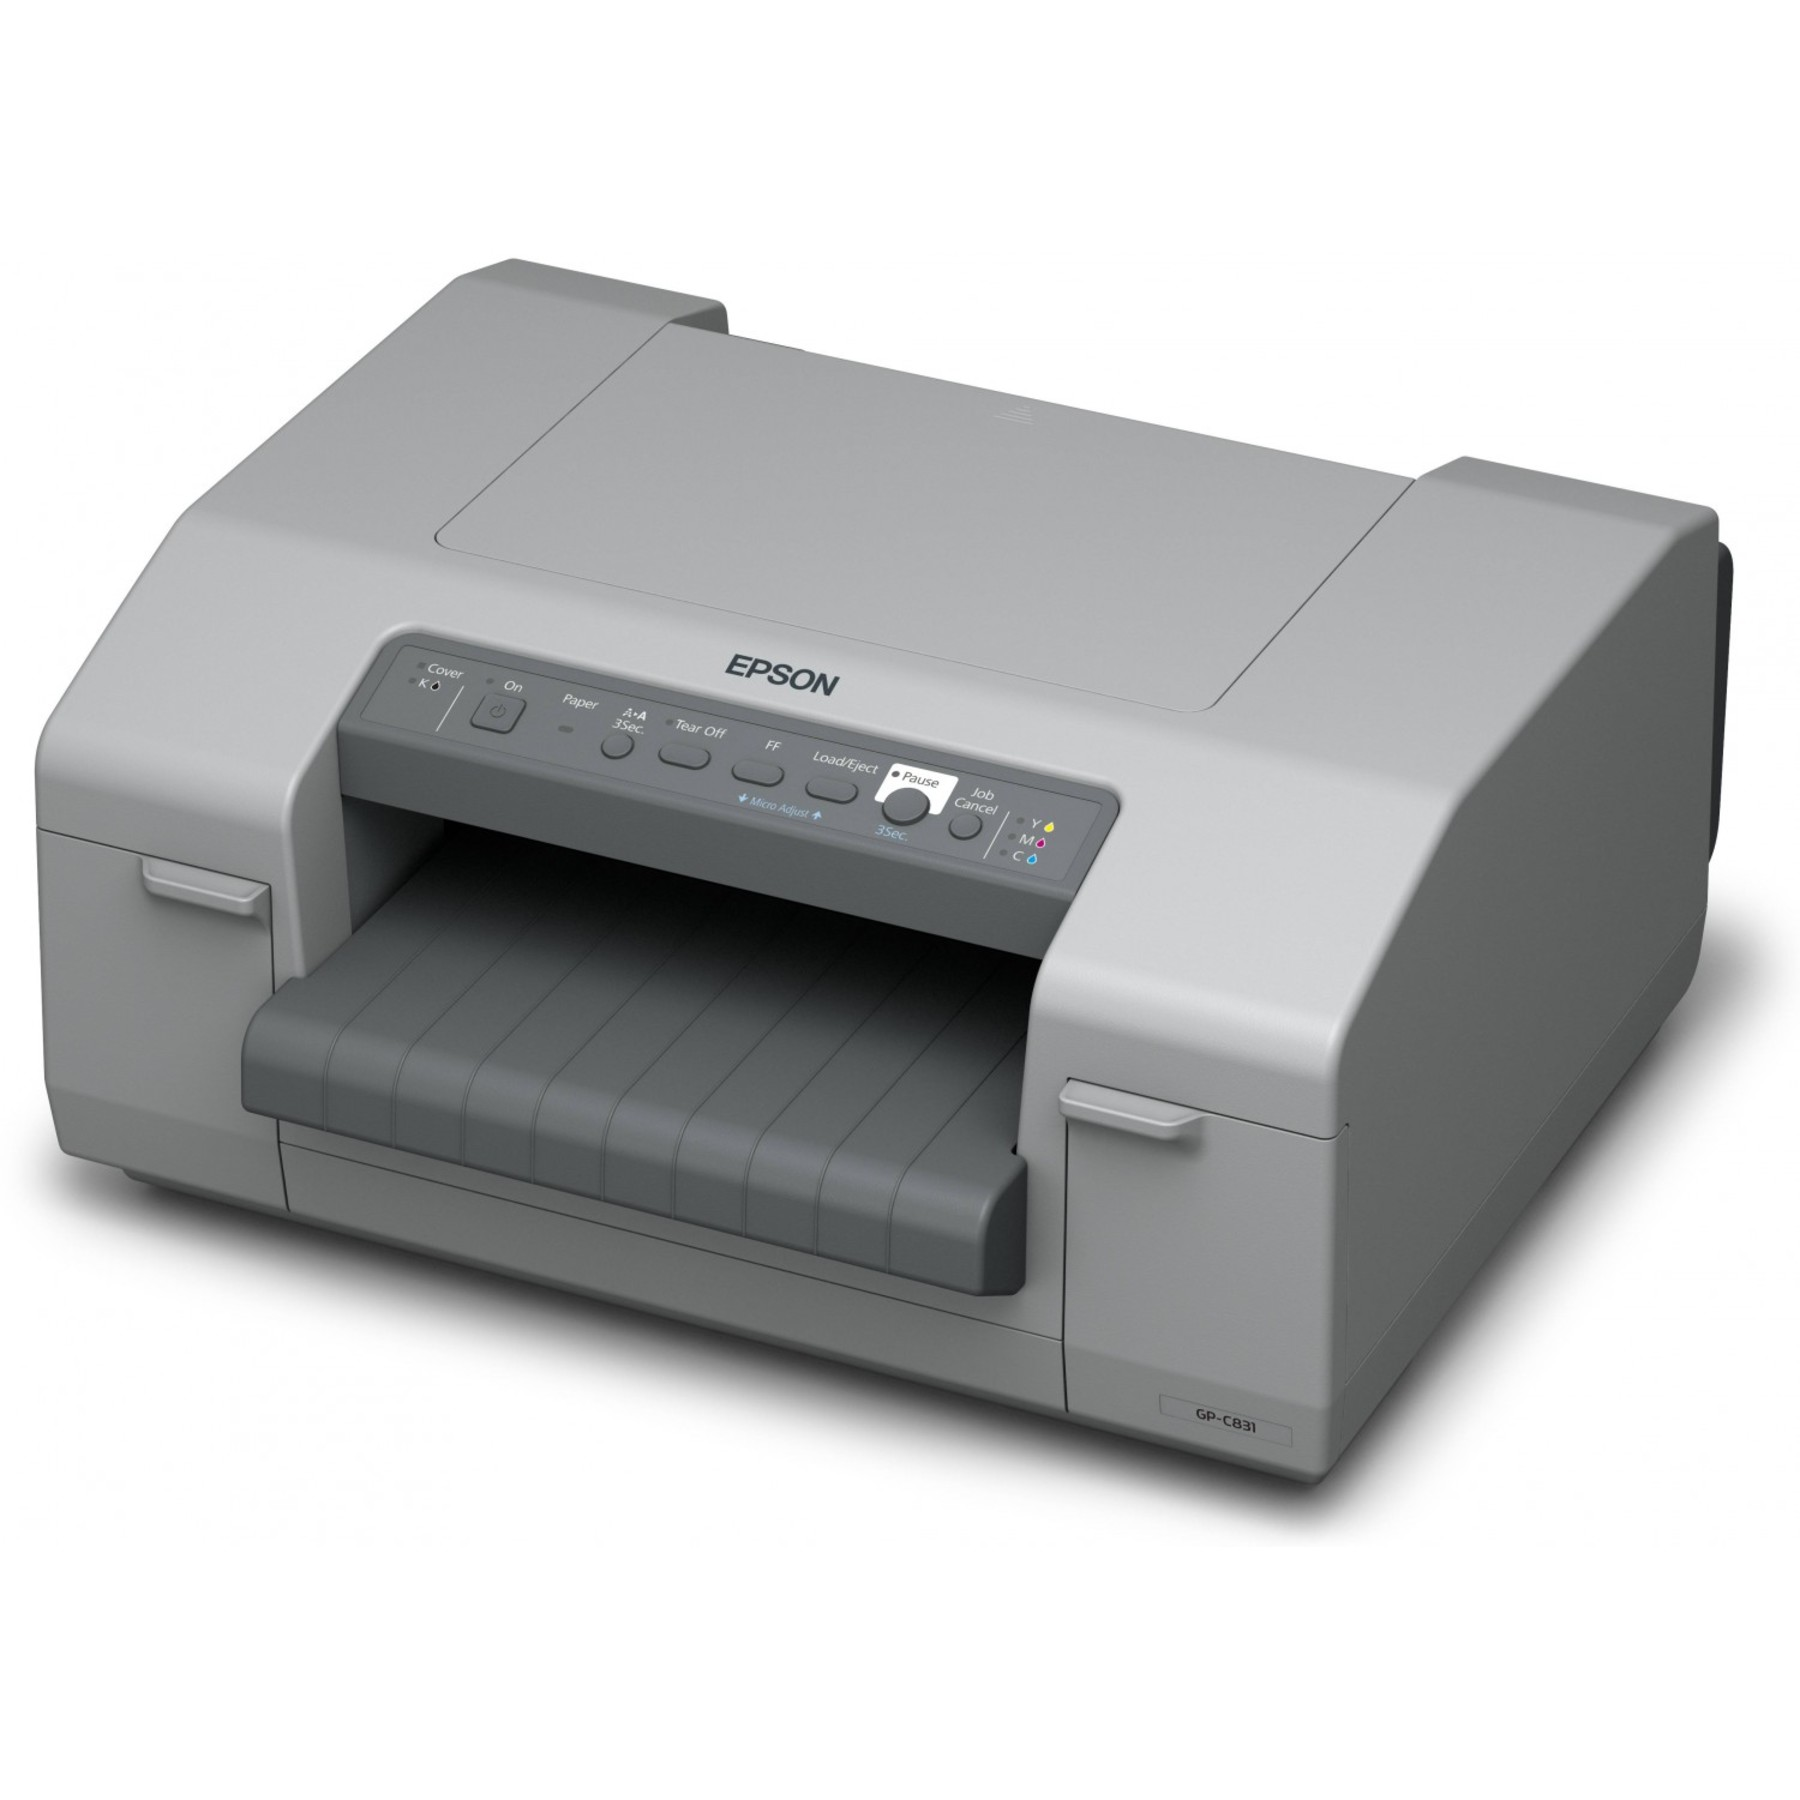 Epson ColorWorks C831 Industrial Label Printer | Cash